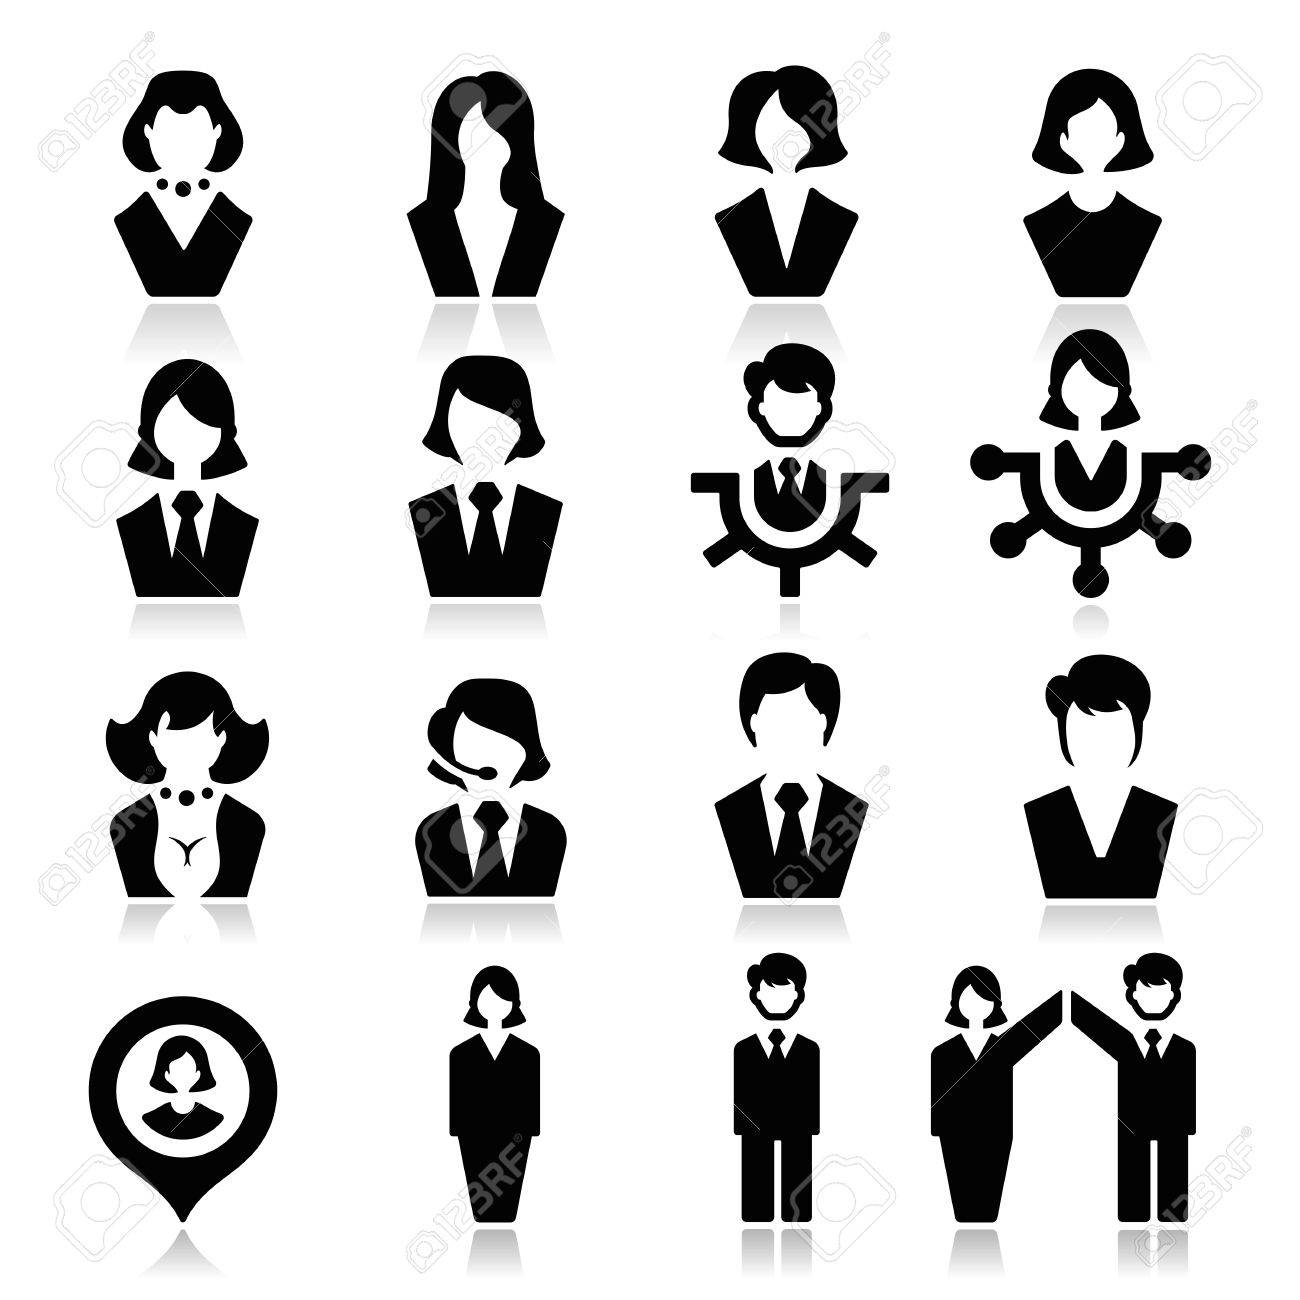 Businessman and businesswoman Icons - 23103910